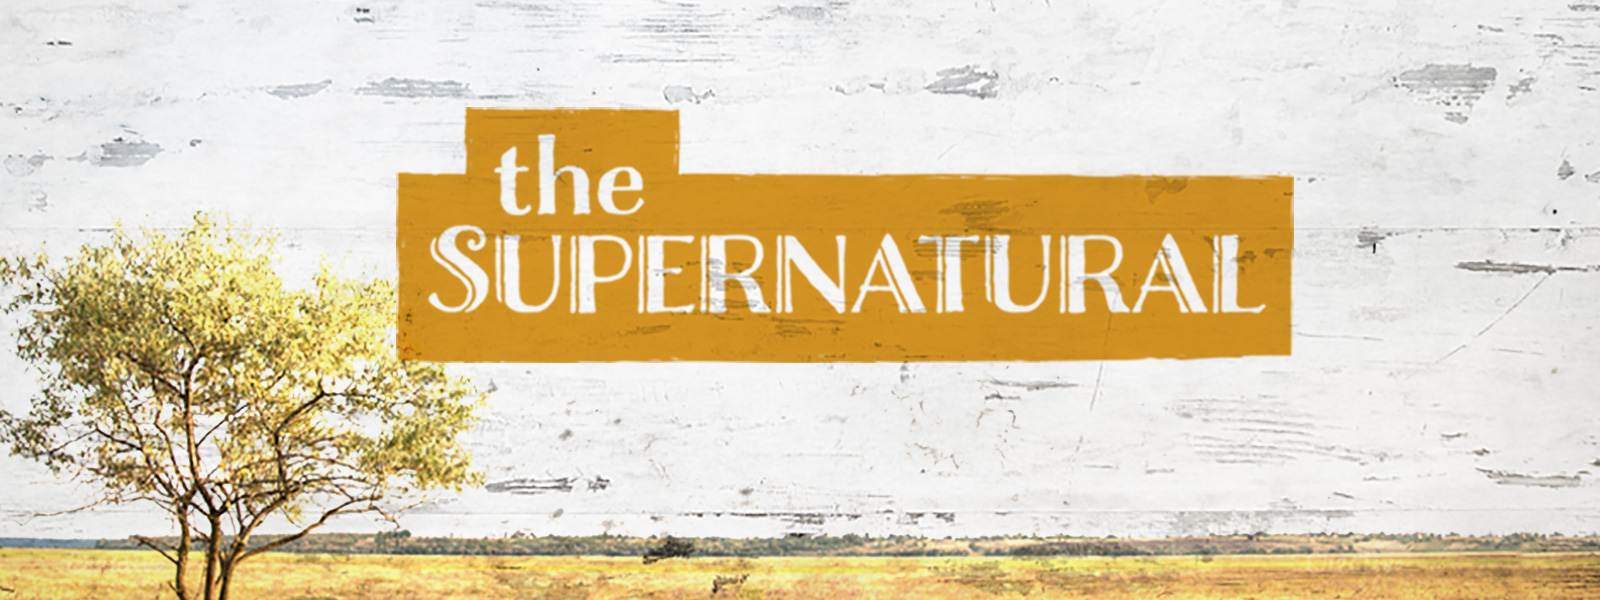 JFM-Hp-TheSupernatural